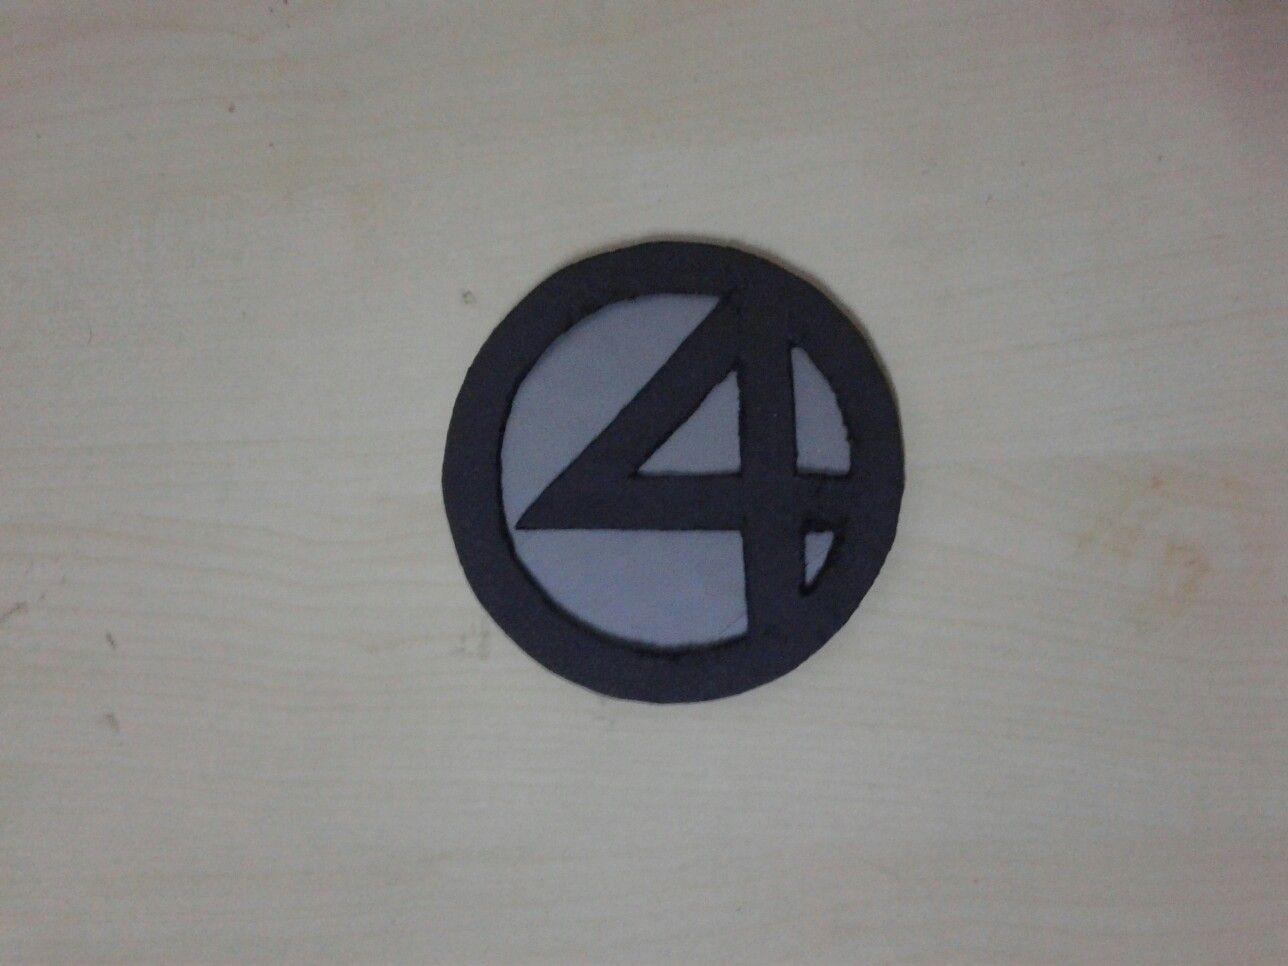 Fantastic Four Movie Logo DIY ... #fantasticfour #silversurfer #logo #DIY